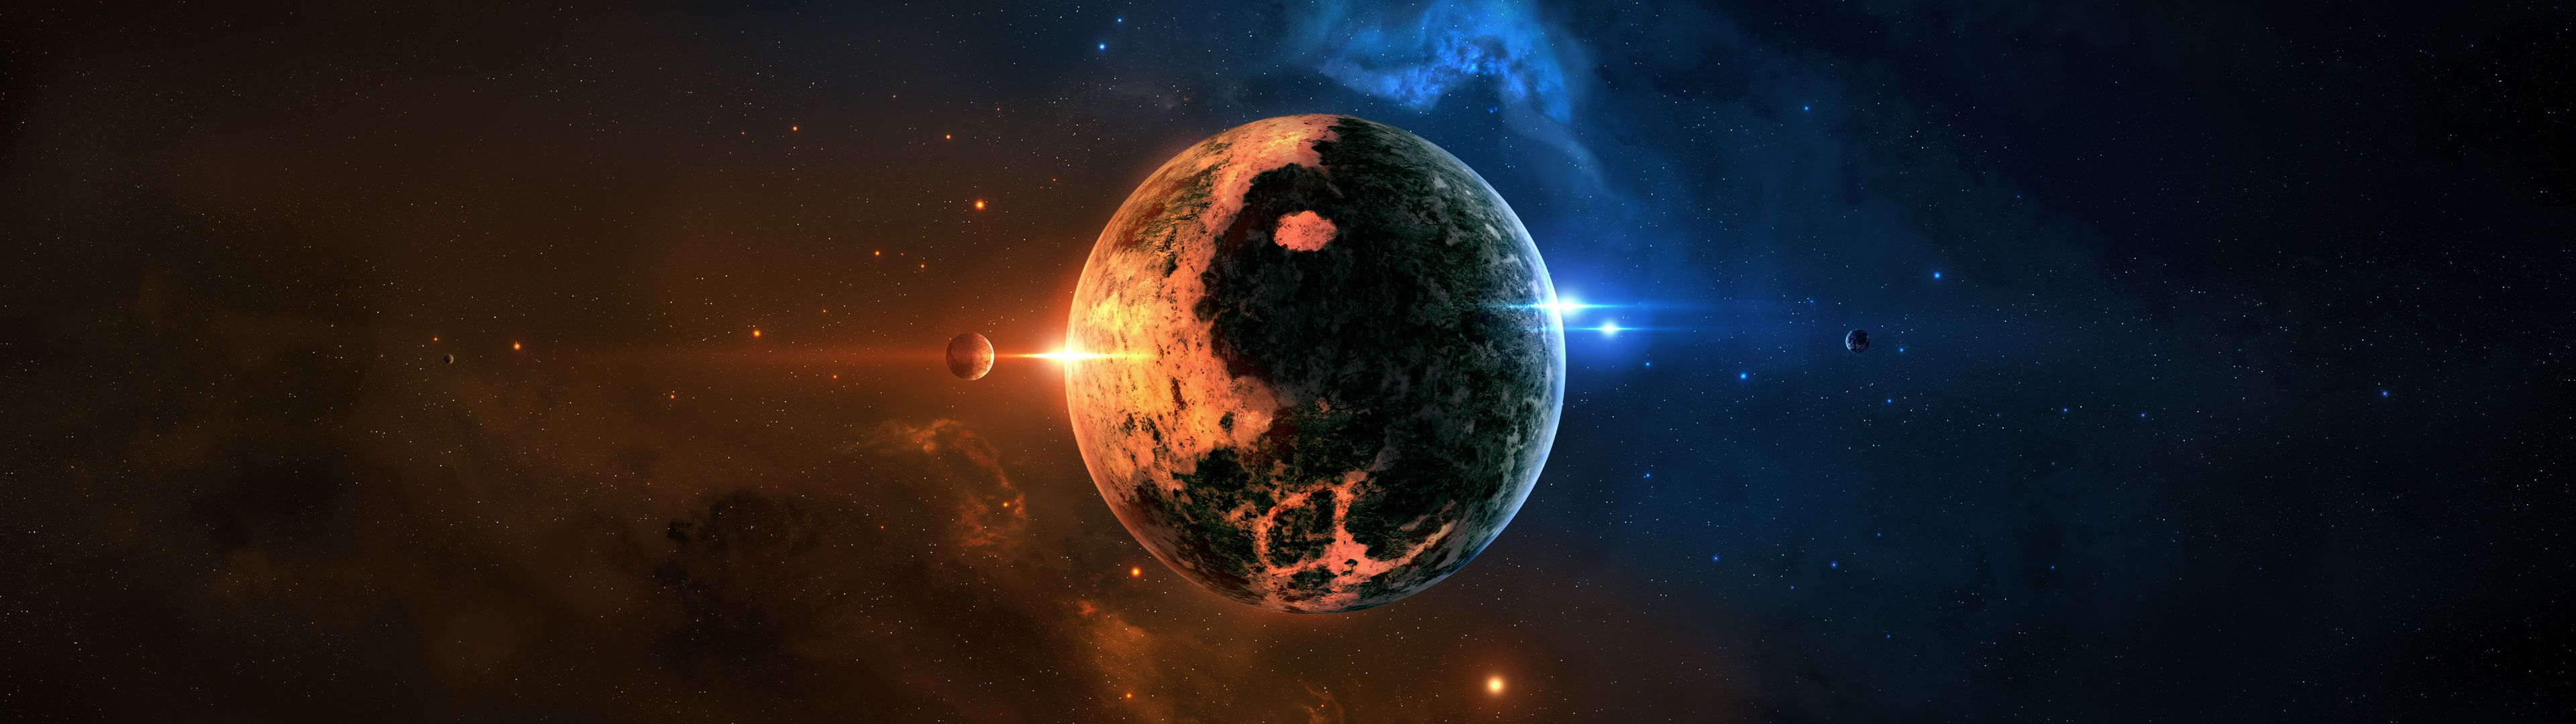 3840x1080 Planet In Outer Space Dual Screen Wallpaper | 3840x1080 | ID:48207 ...